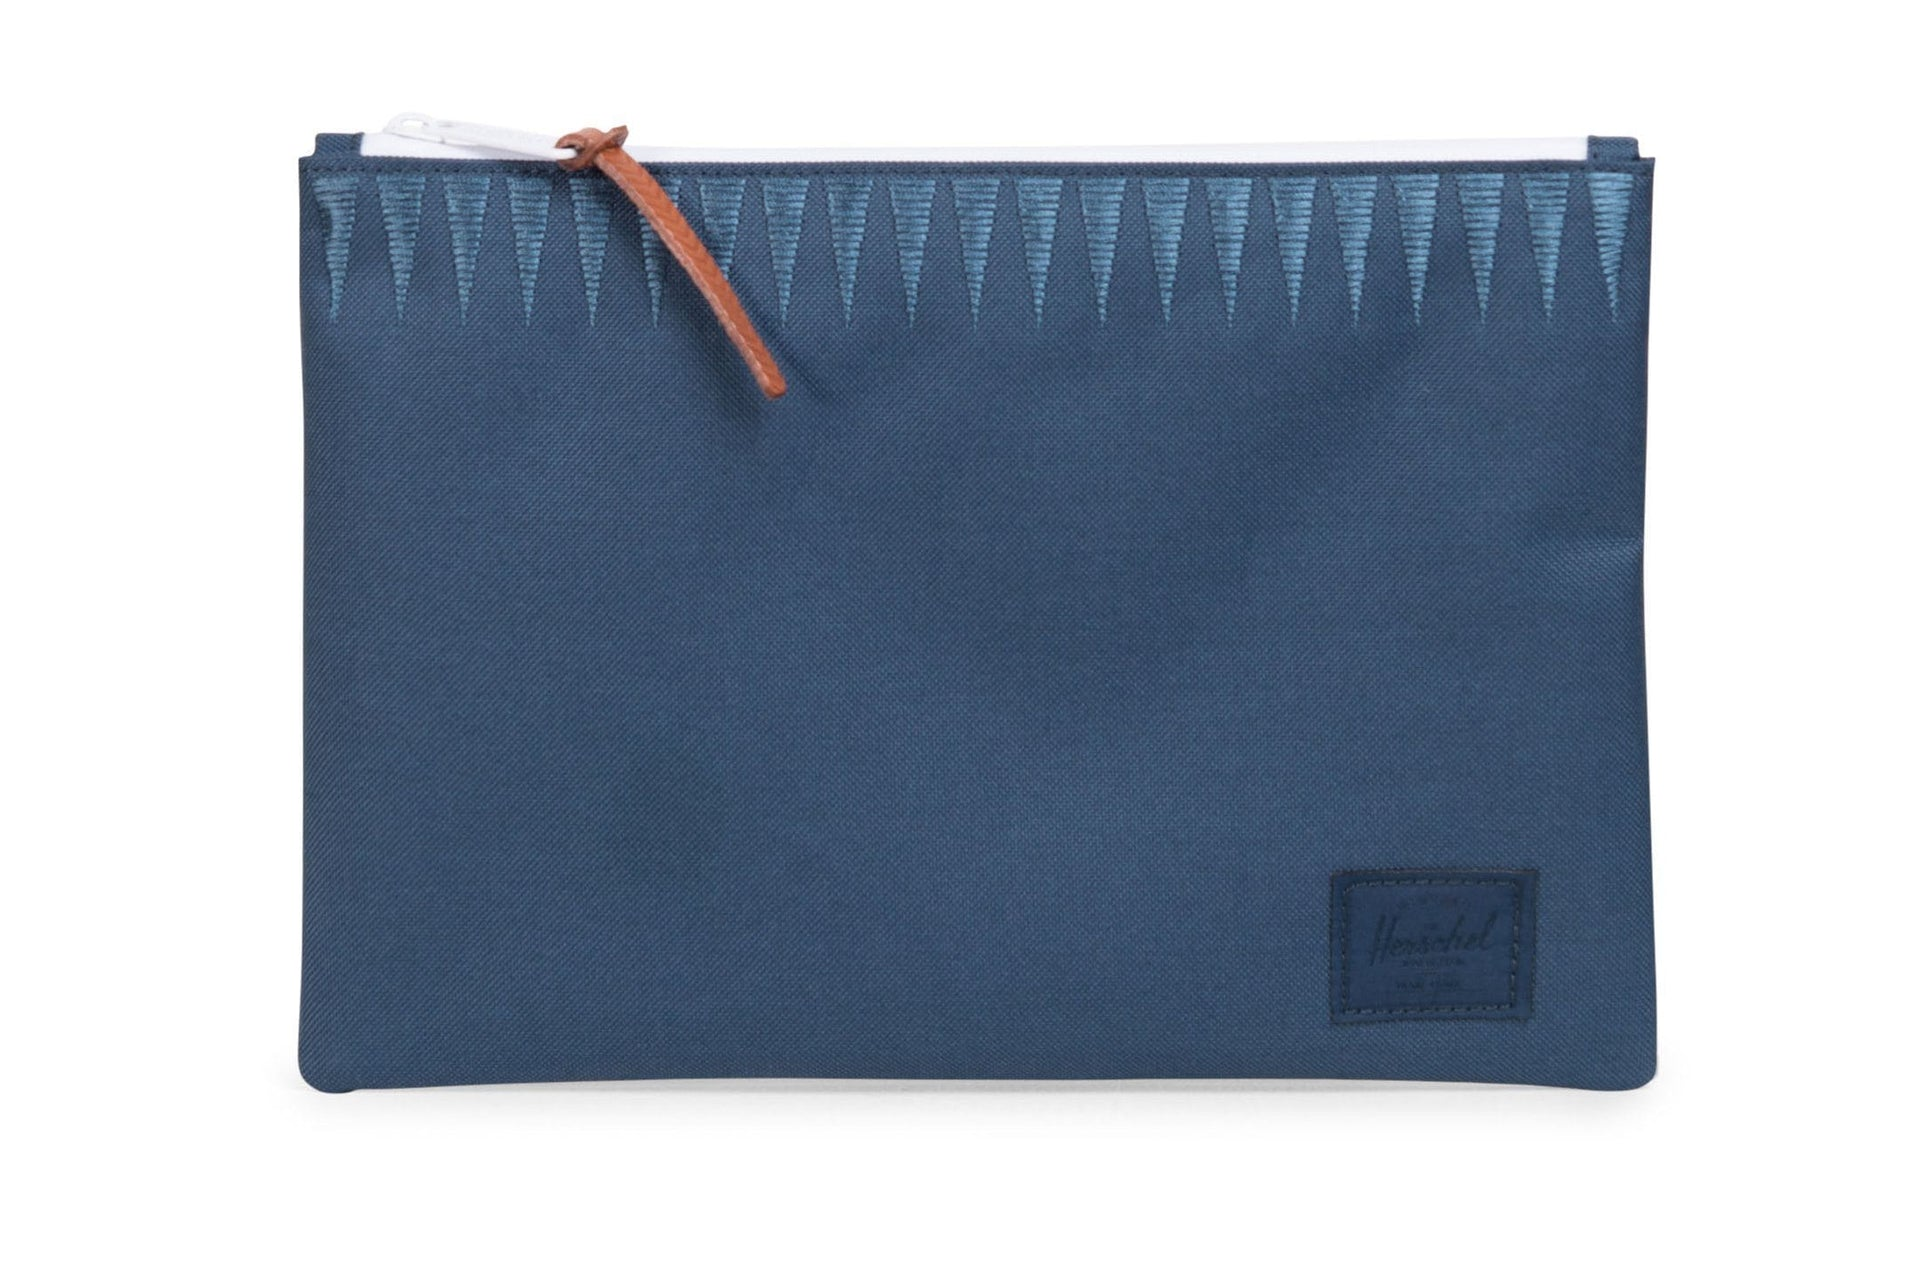 NETWORK L 600D POLY EMBRDRY ACCESSORIES HERSCHEL NAVY EMBROIDERY L